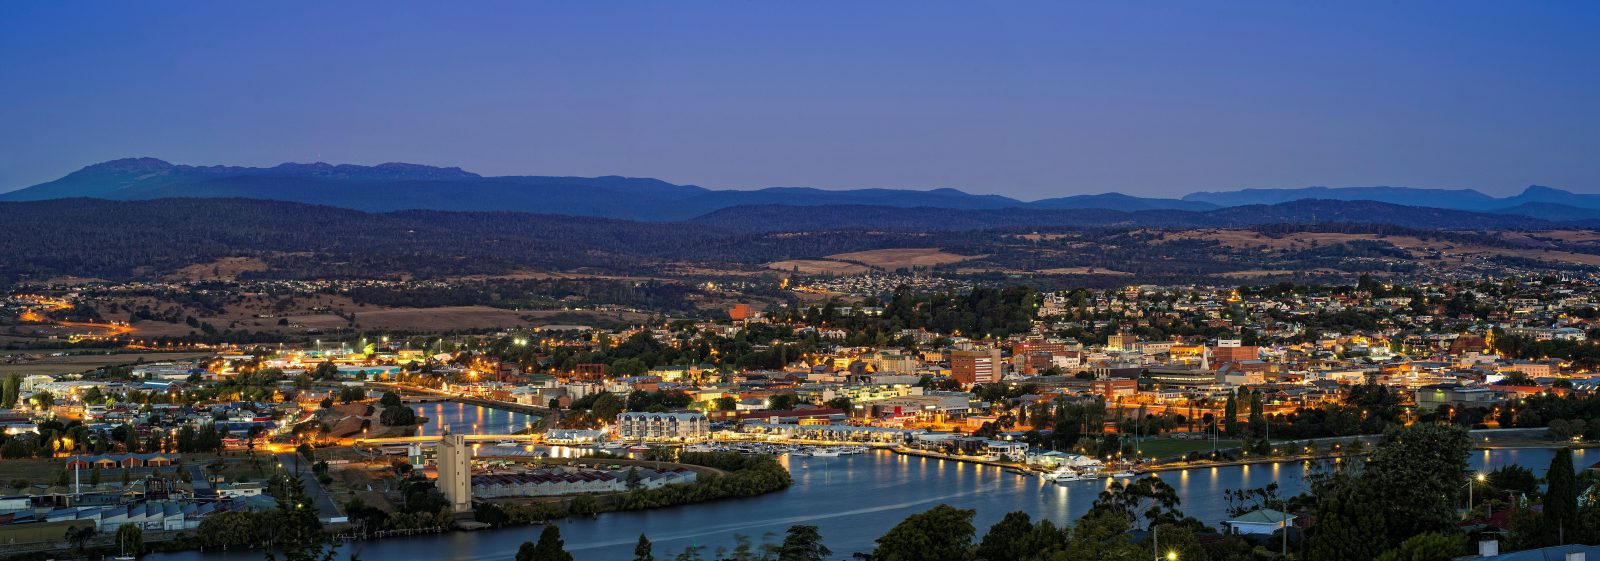 Launceston's setting, between the mountains of Northern Tasmania and its rivers.